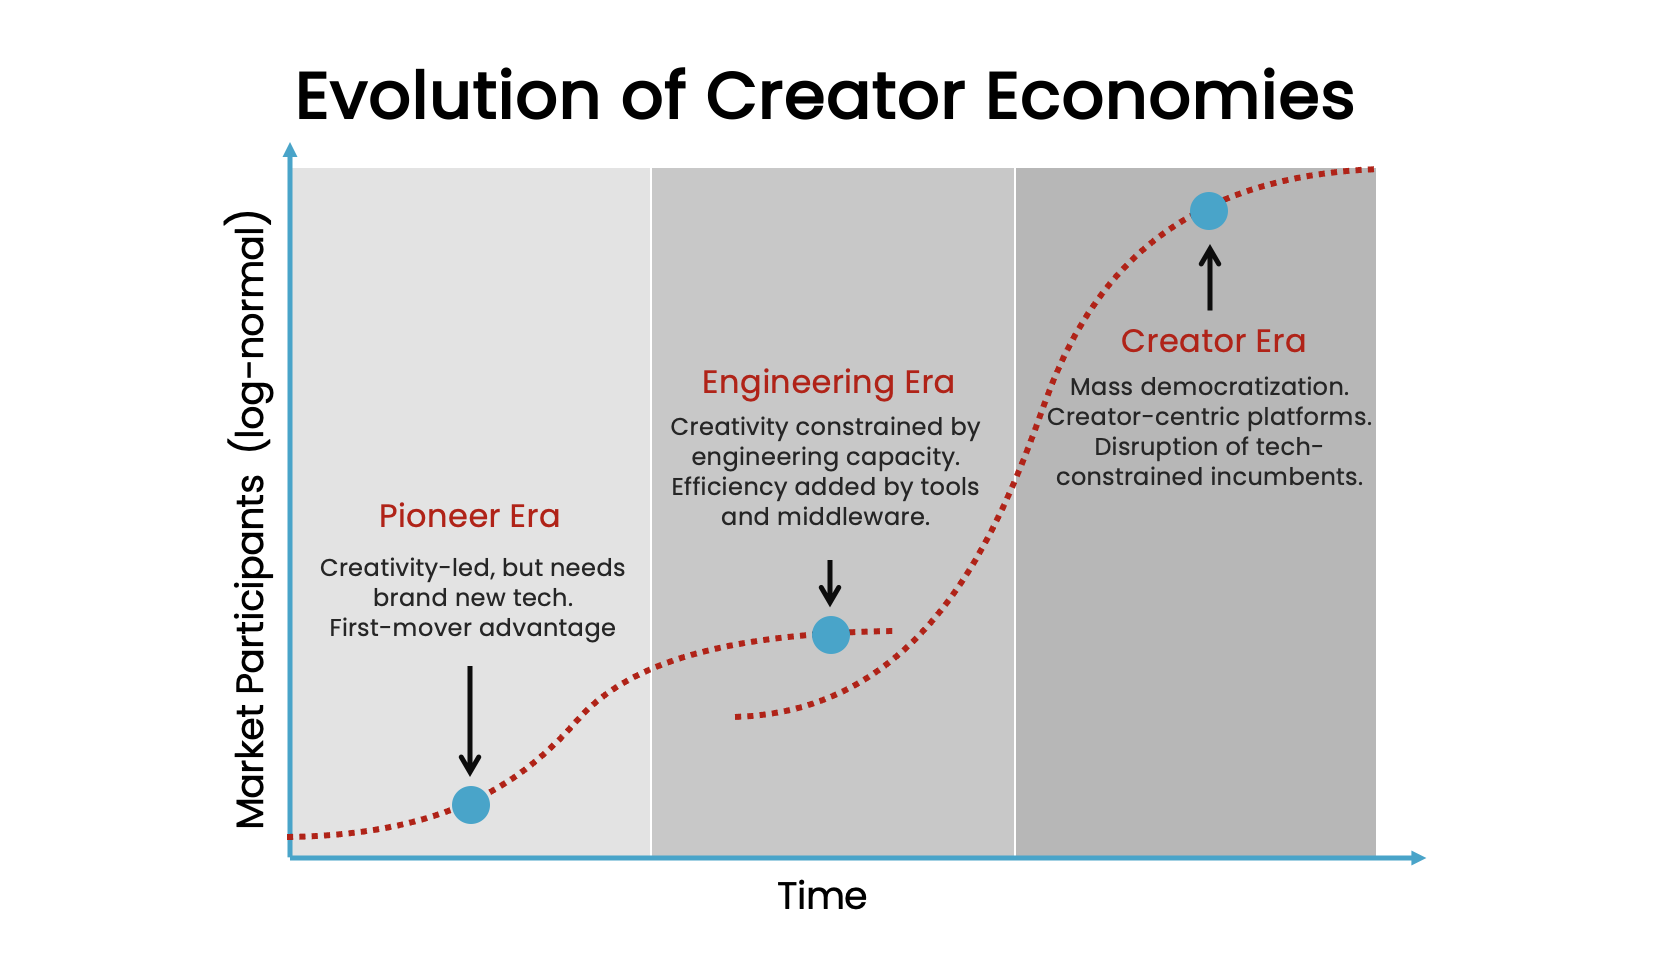 Evolution of Creator Economies. Pioneer Era, Engineering Era, Creator Era.